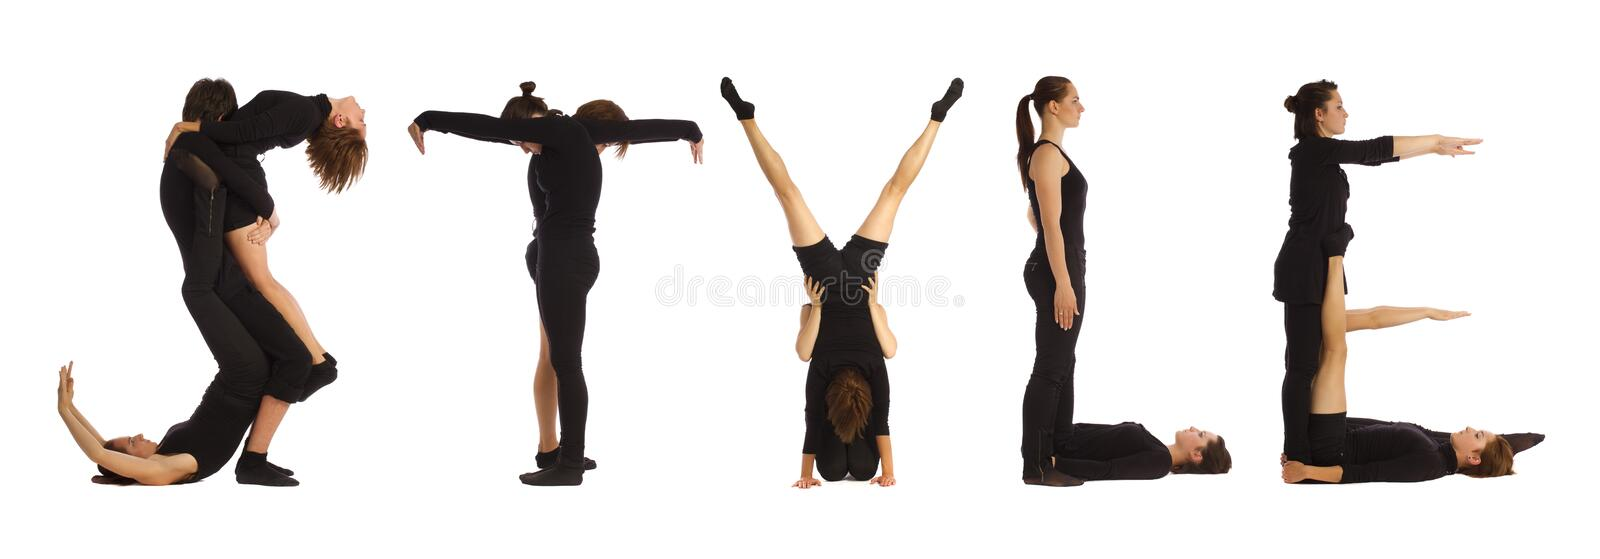 Black dressed people forming STYLE word. Over white background royalty free stock photos